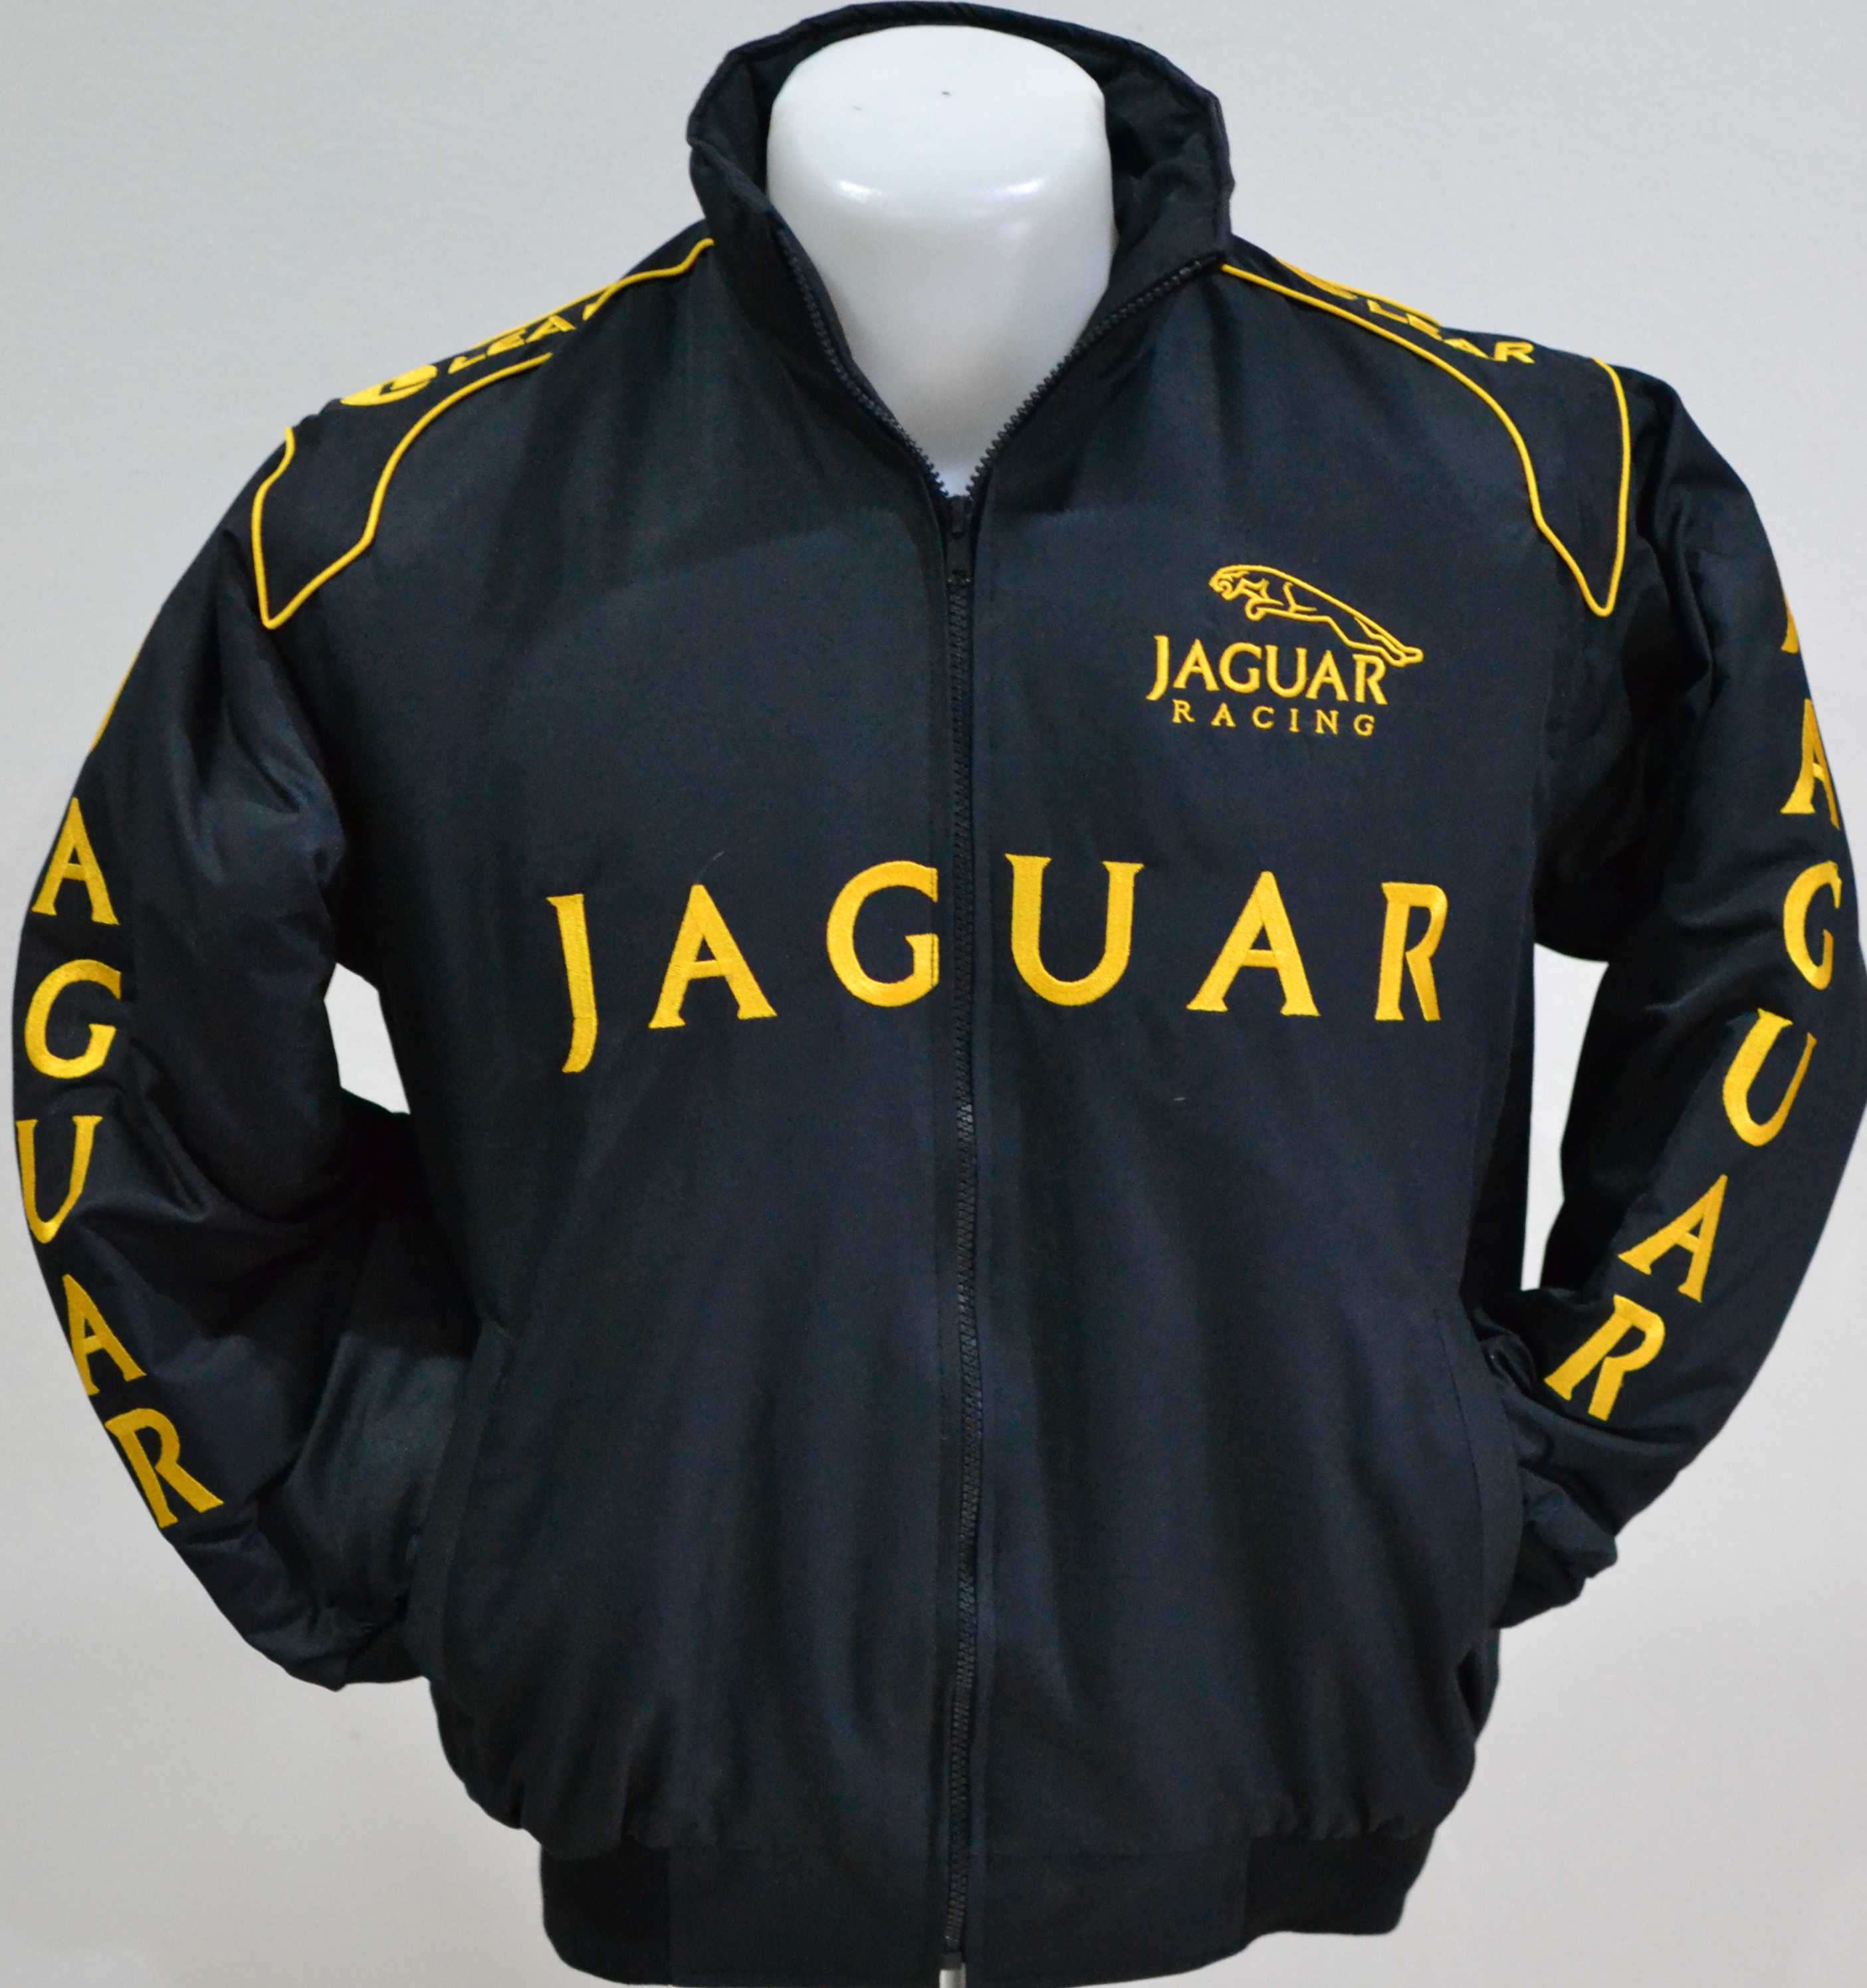 b64316faf998dc Jaguar - Jacket // Jaguar - Jacke // black · Pro Fashion · Online ...